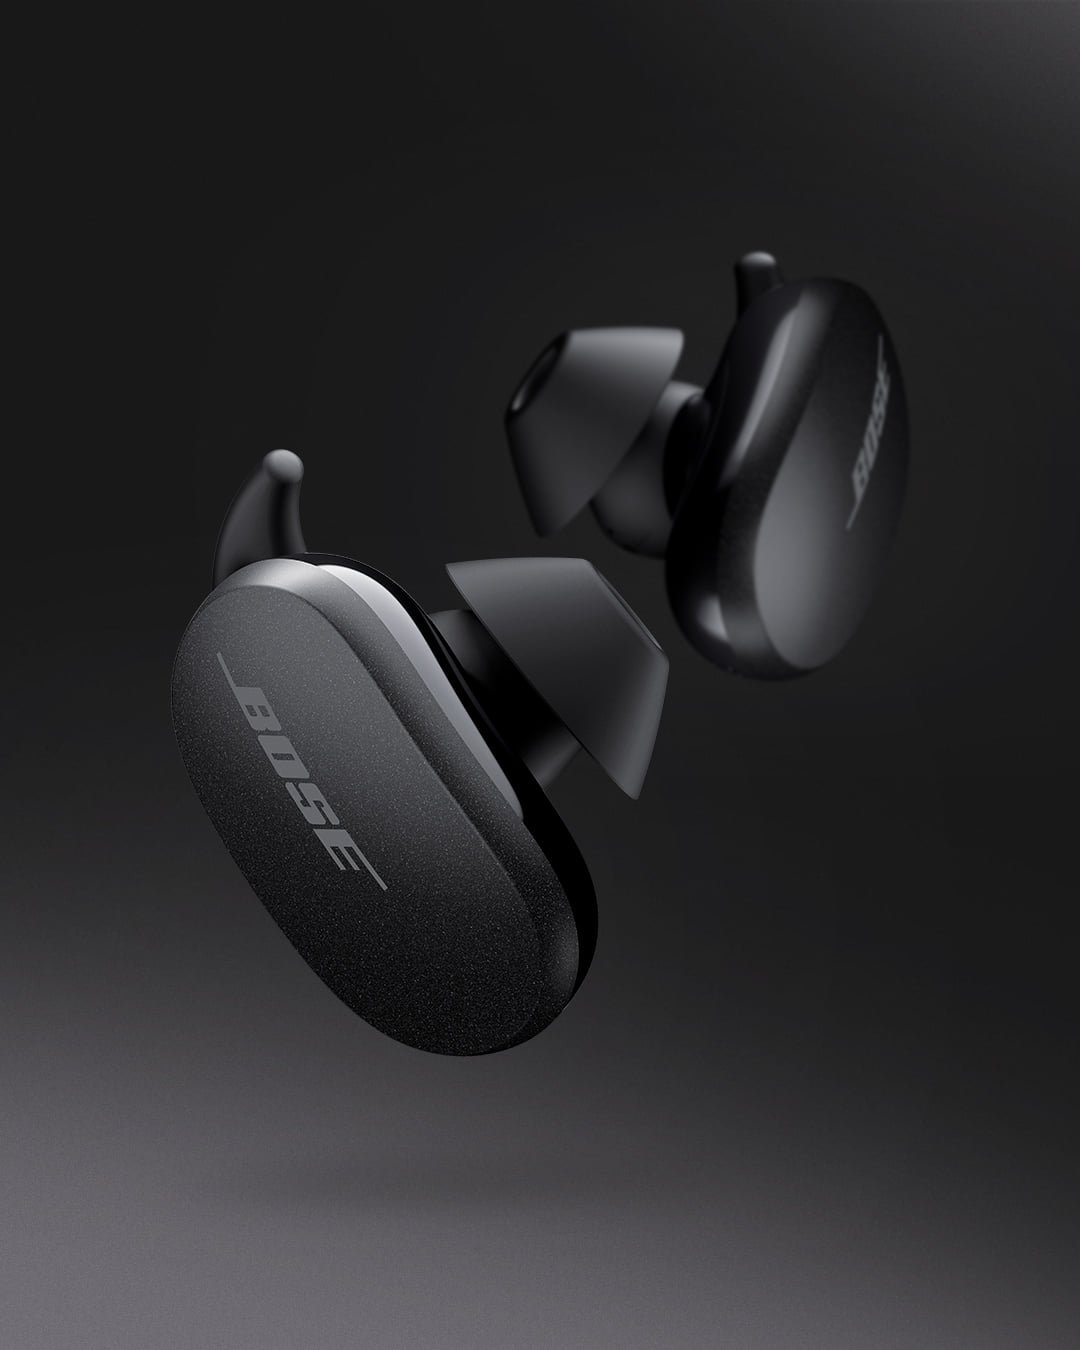 Bose QuietComfort Noise Cancelling Earbuds black design